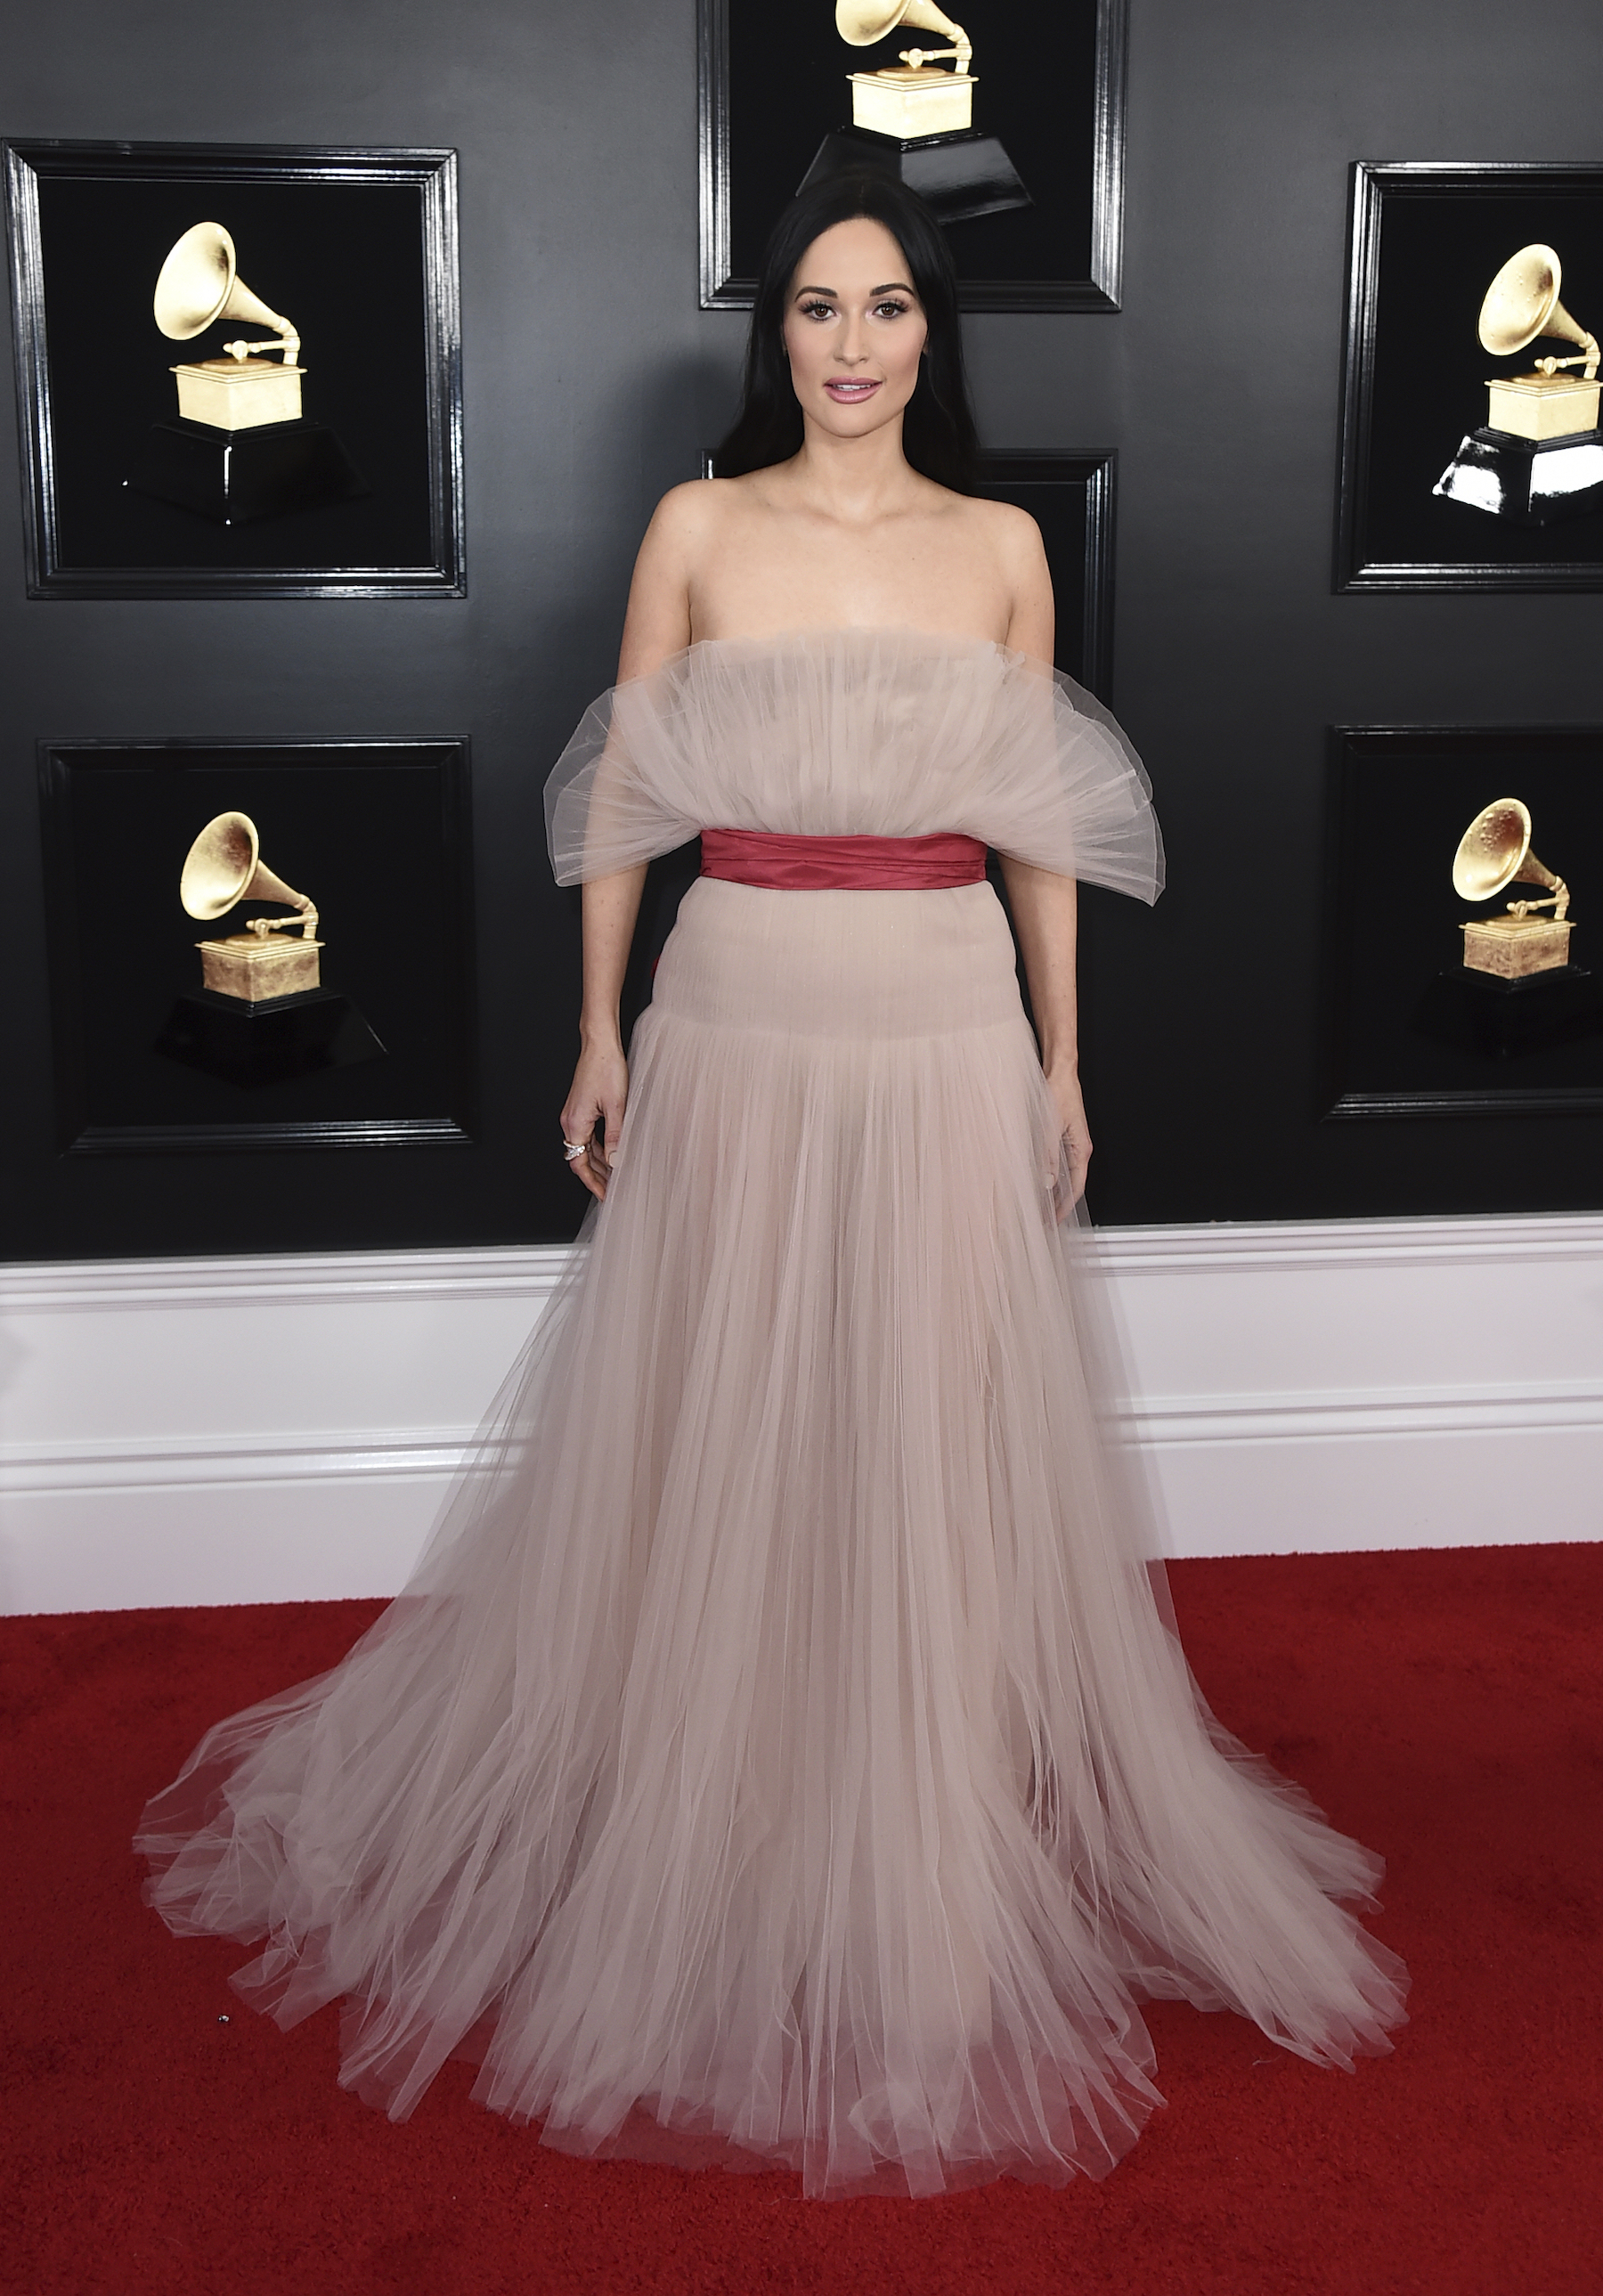 <div class='meta'><div class='origin-logo' data-origin='AP'></div><span class='caption-text' data-credit='Jordan Strauss/Invision/AP'>Kacey Musgraves arrives at the 61st annual Grammy Awards at the Staples Center on Sunday, Feb. 10, 2019, in Los Angeles.</span></div>